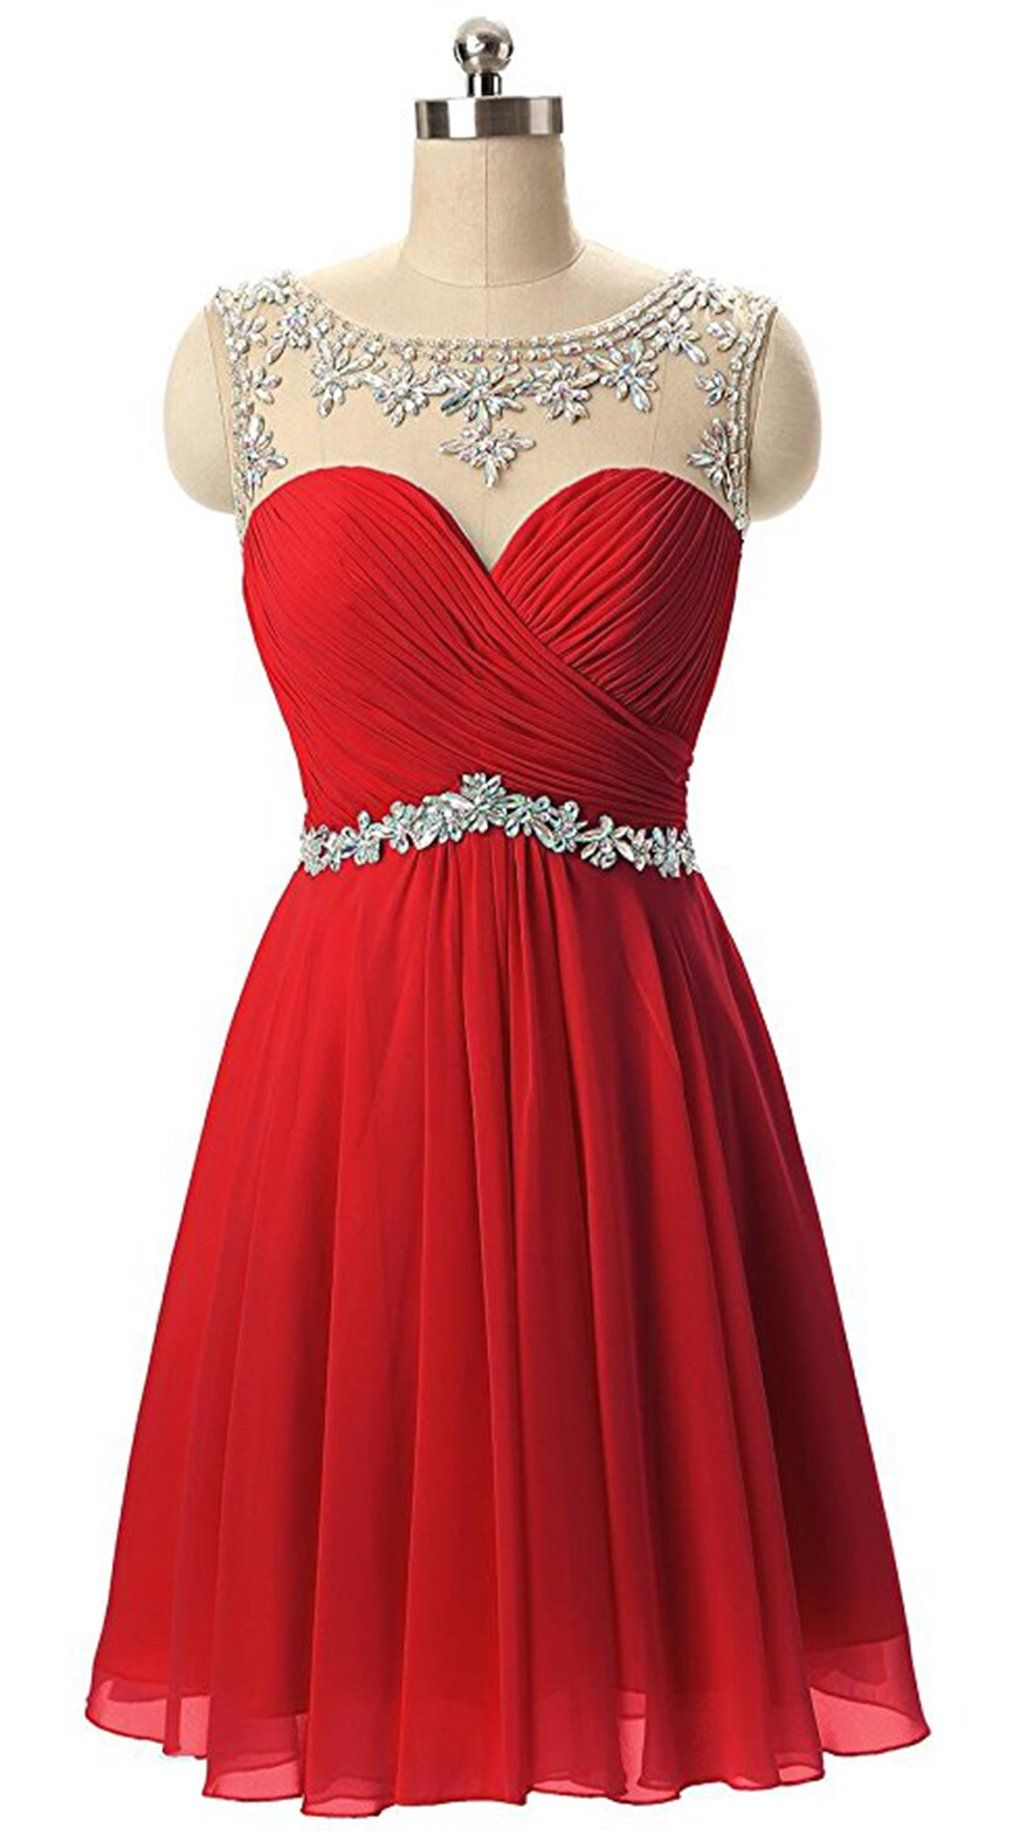 f5e1dabce80b Butmoon Womens Chiffon Beaded Homecoming Dresses short Prom Dresses Red US4  *** Visit the image link more details. (This is an affiliate link and I  receive ...